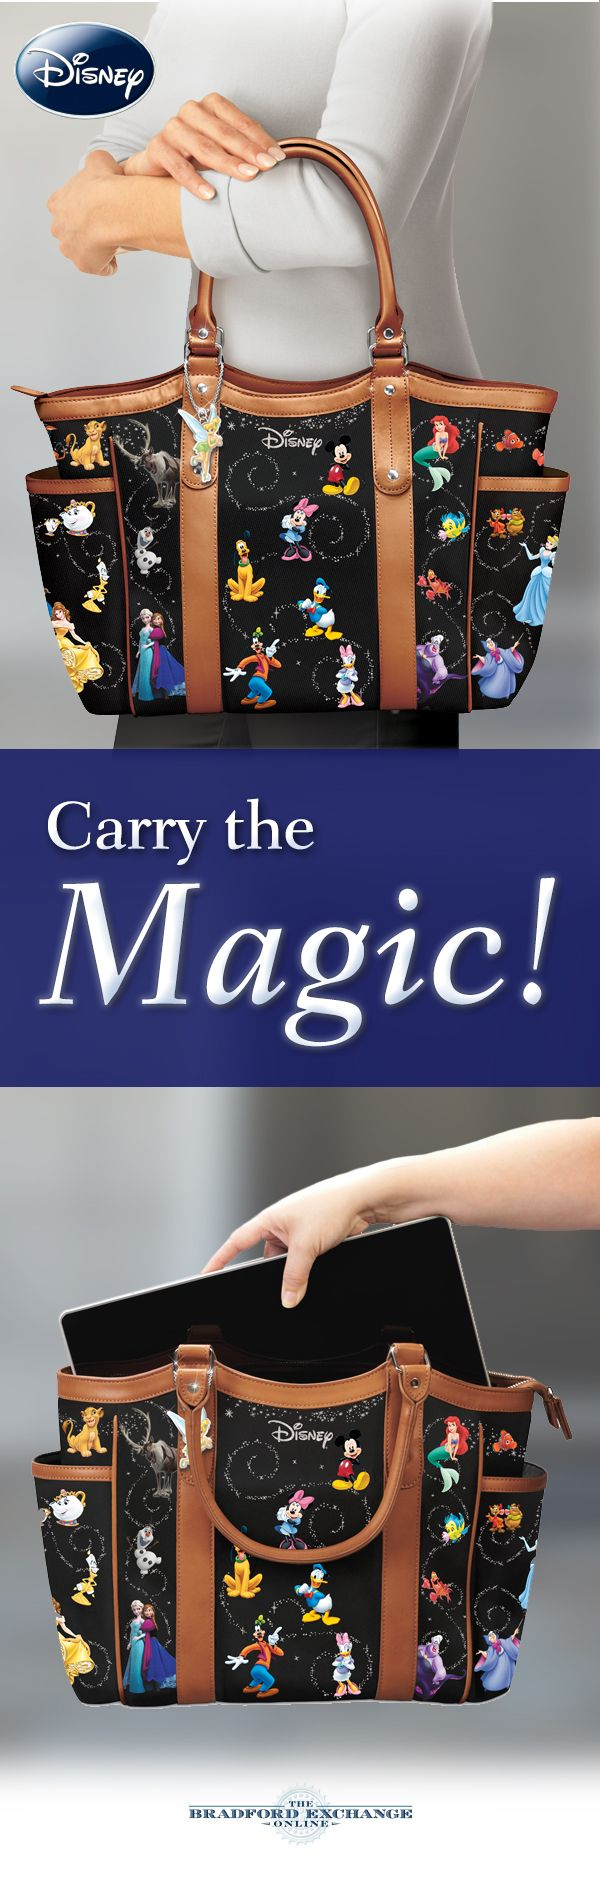 """Carry the magic with all of your favorite Disney characters! This designer-style handbag showcases characters from """"The Lion King"""" and """"Finding Nemo,"""" along with Cinderella, Belle, Snow White and the Seven Dwarfs, Aladdin and Winnie the Pooh. There's even a dangling Tinker Bell charm for an extra touch of enchantment."""